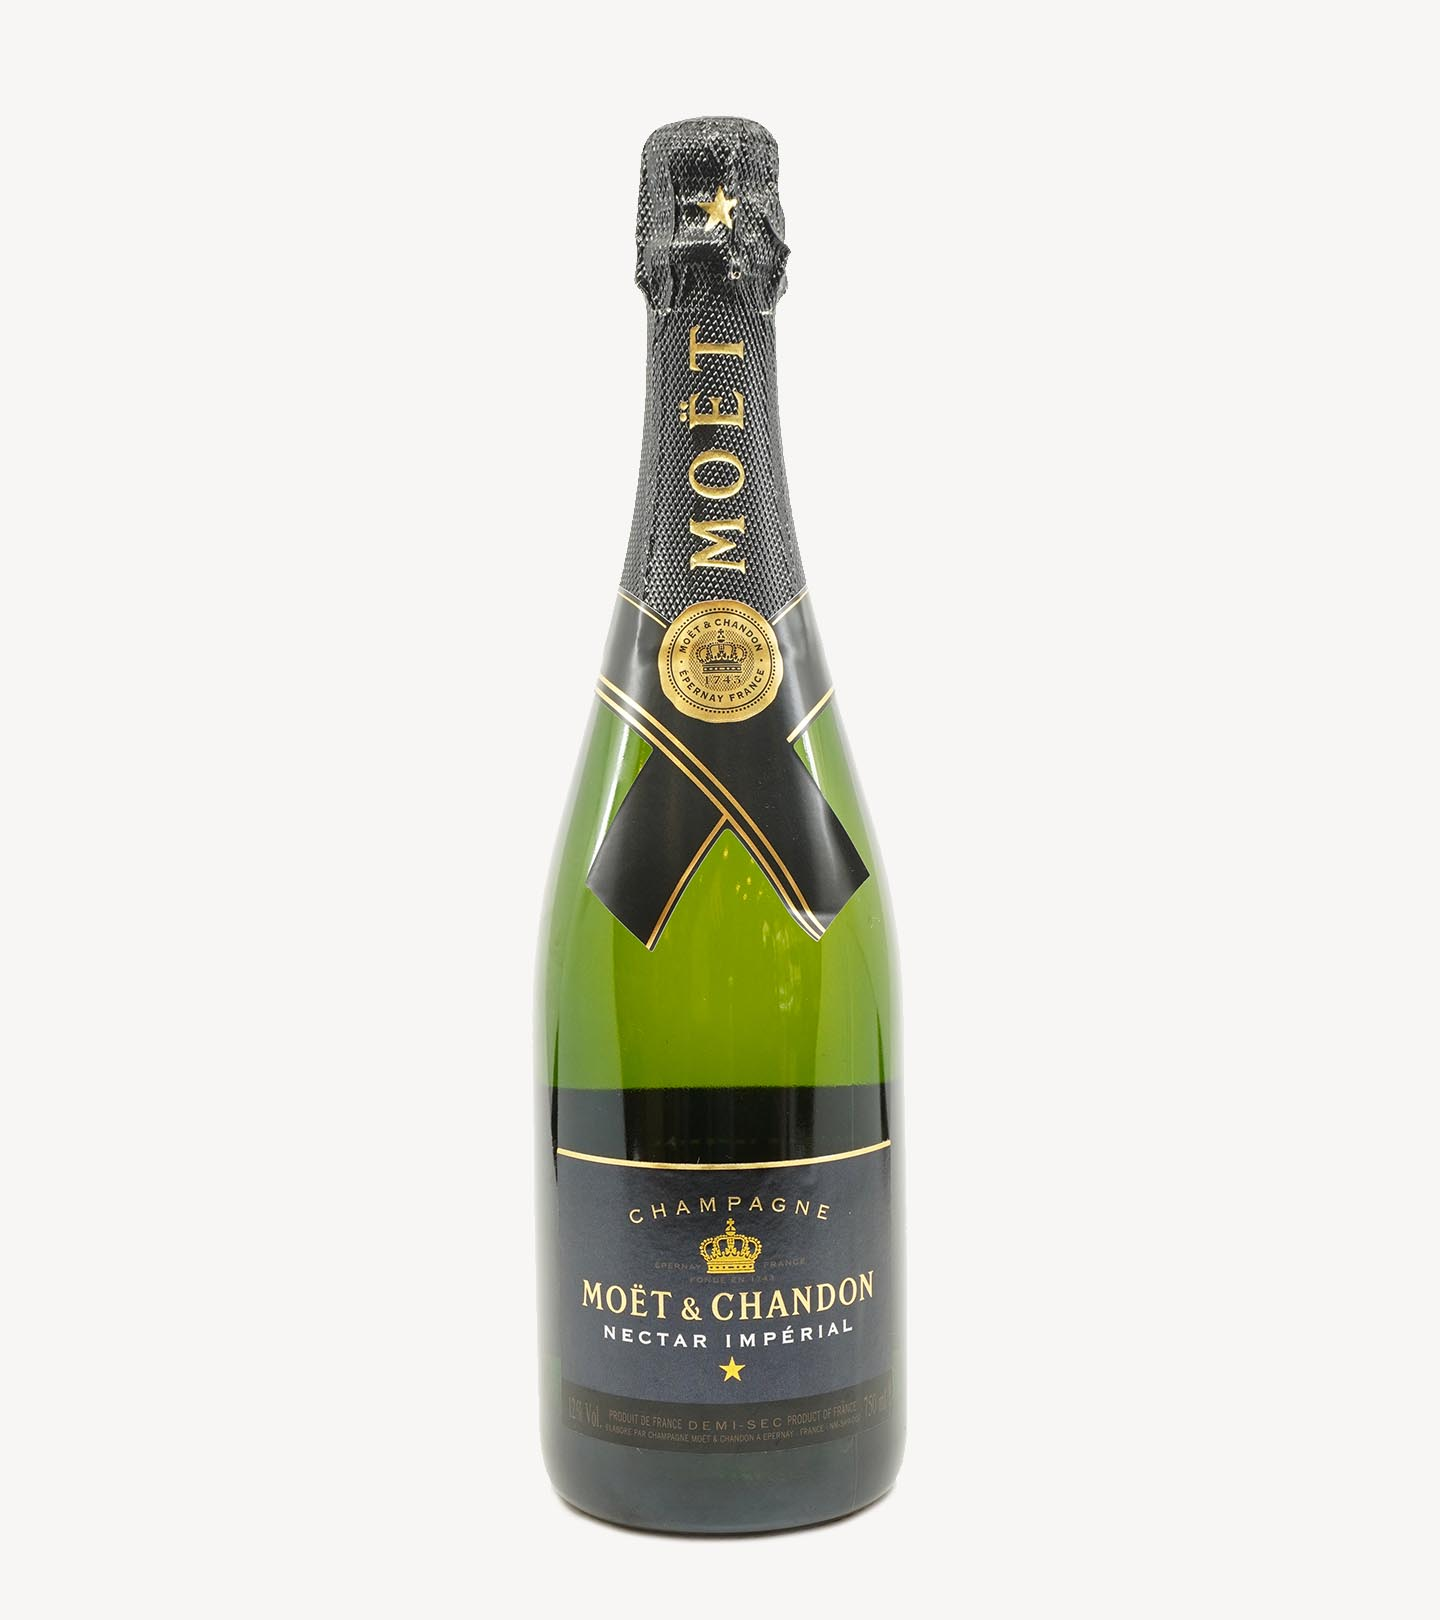 Champagne Moet & Chandon Nectar Imperial 75cl